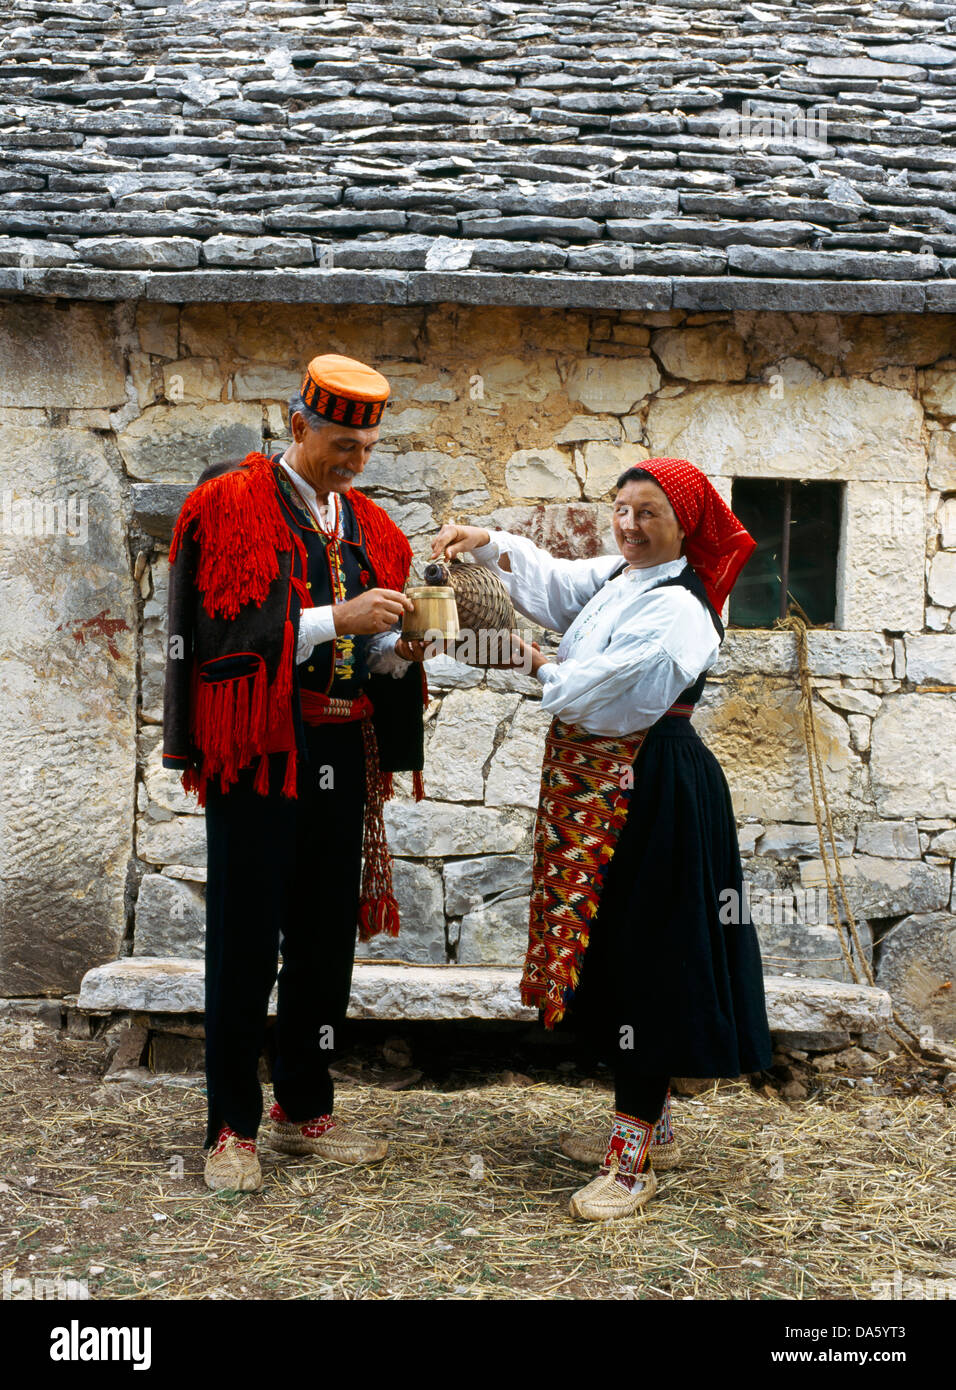 Central dalmatia croatia pakovo selo village couple in traditional dress